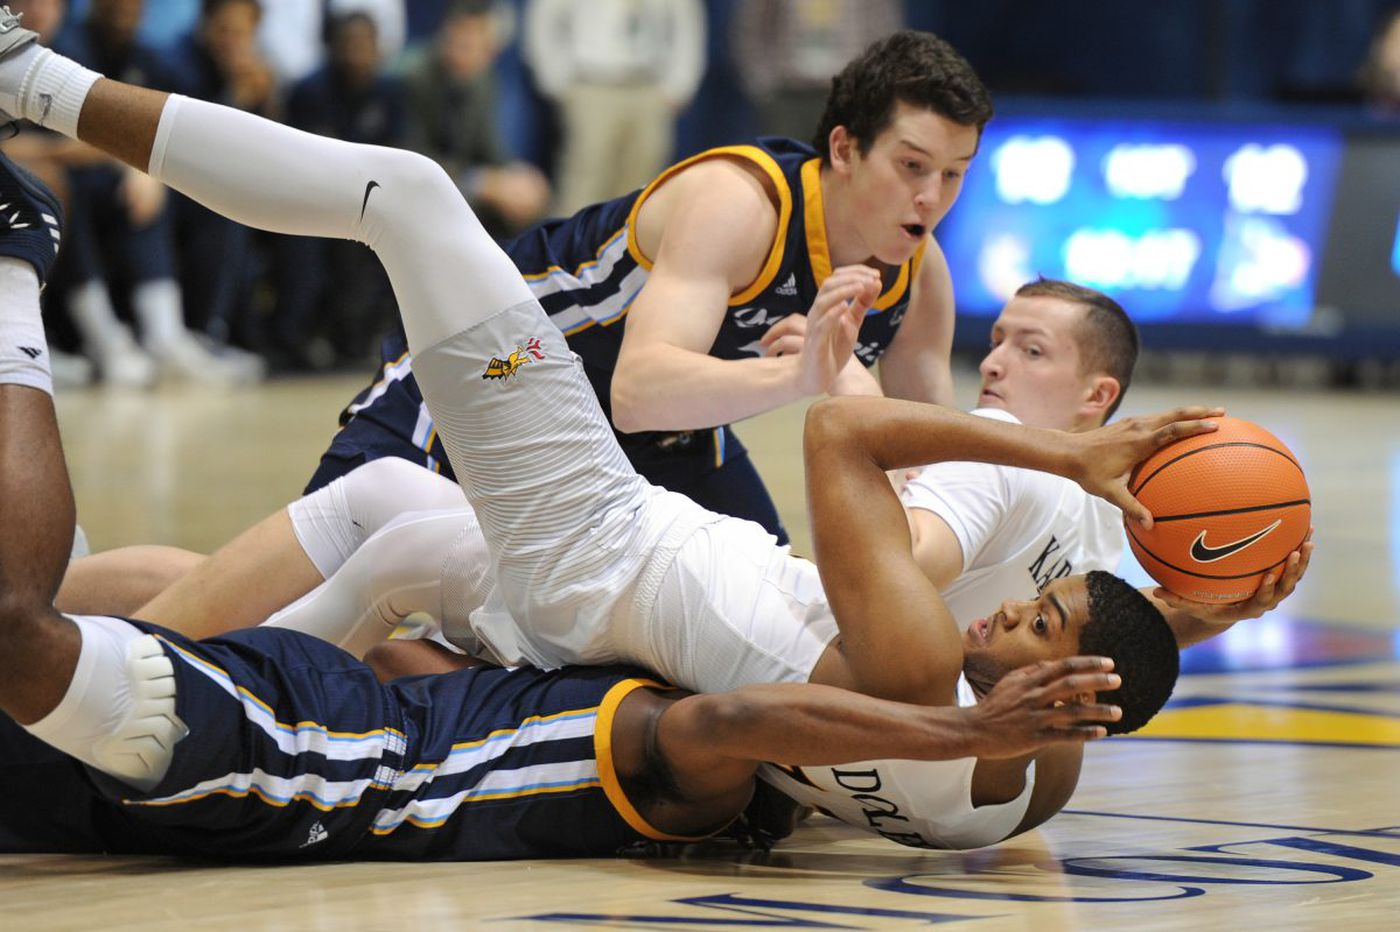 Lee's three-pointer lifts Drexel past Quinnipiac, 72-71